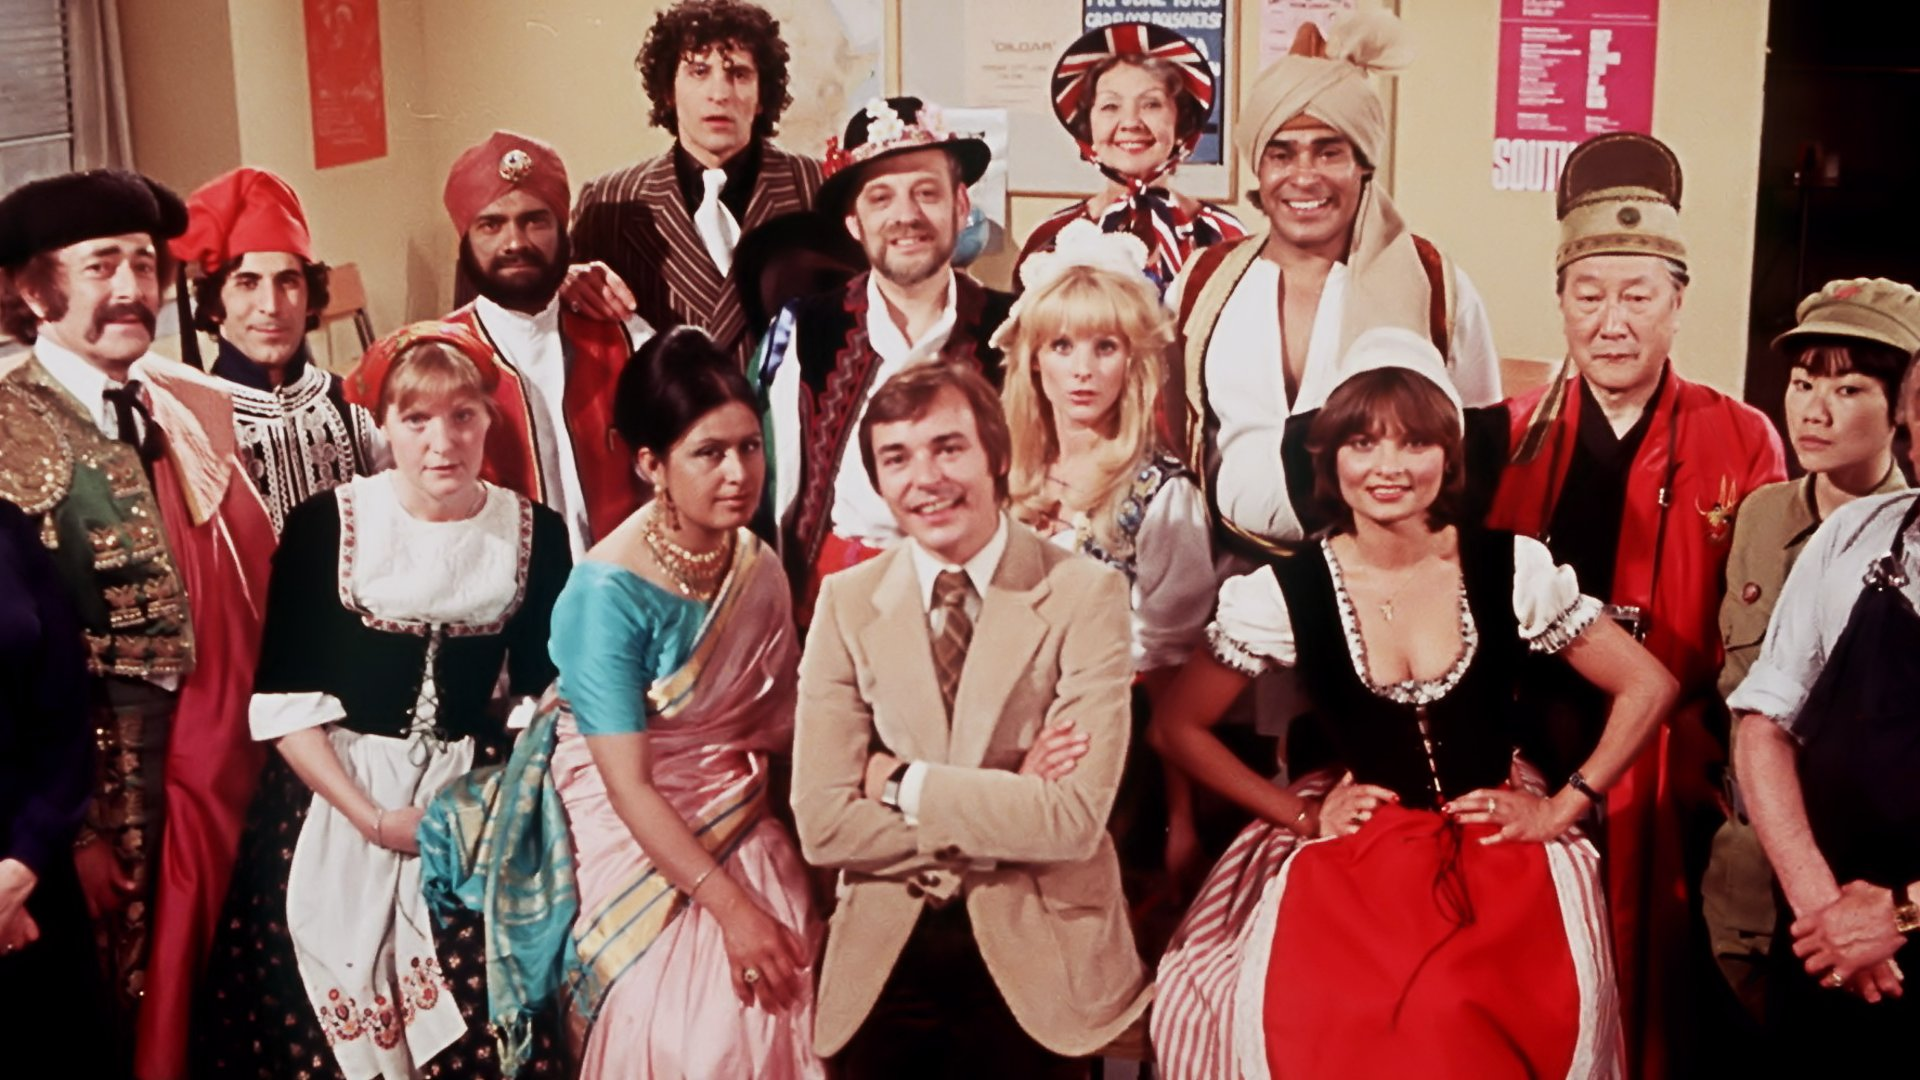 mind your language download full episodes for seasons 1